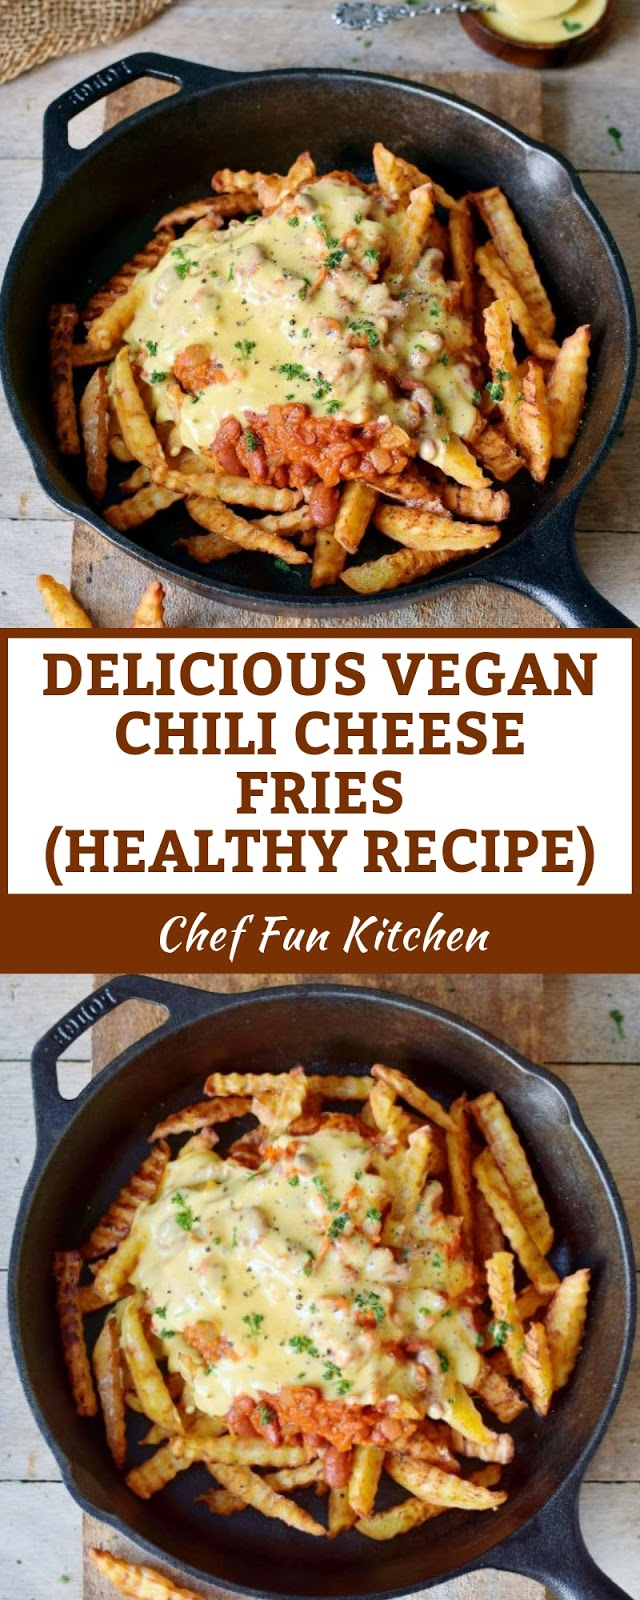 DELICIOUS VEGAN CHILI CHEESE FRIES | HEALTHY RECIPE